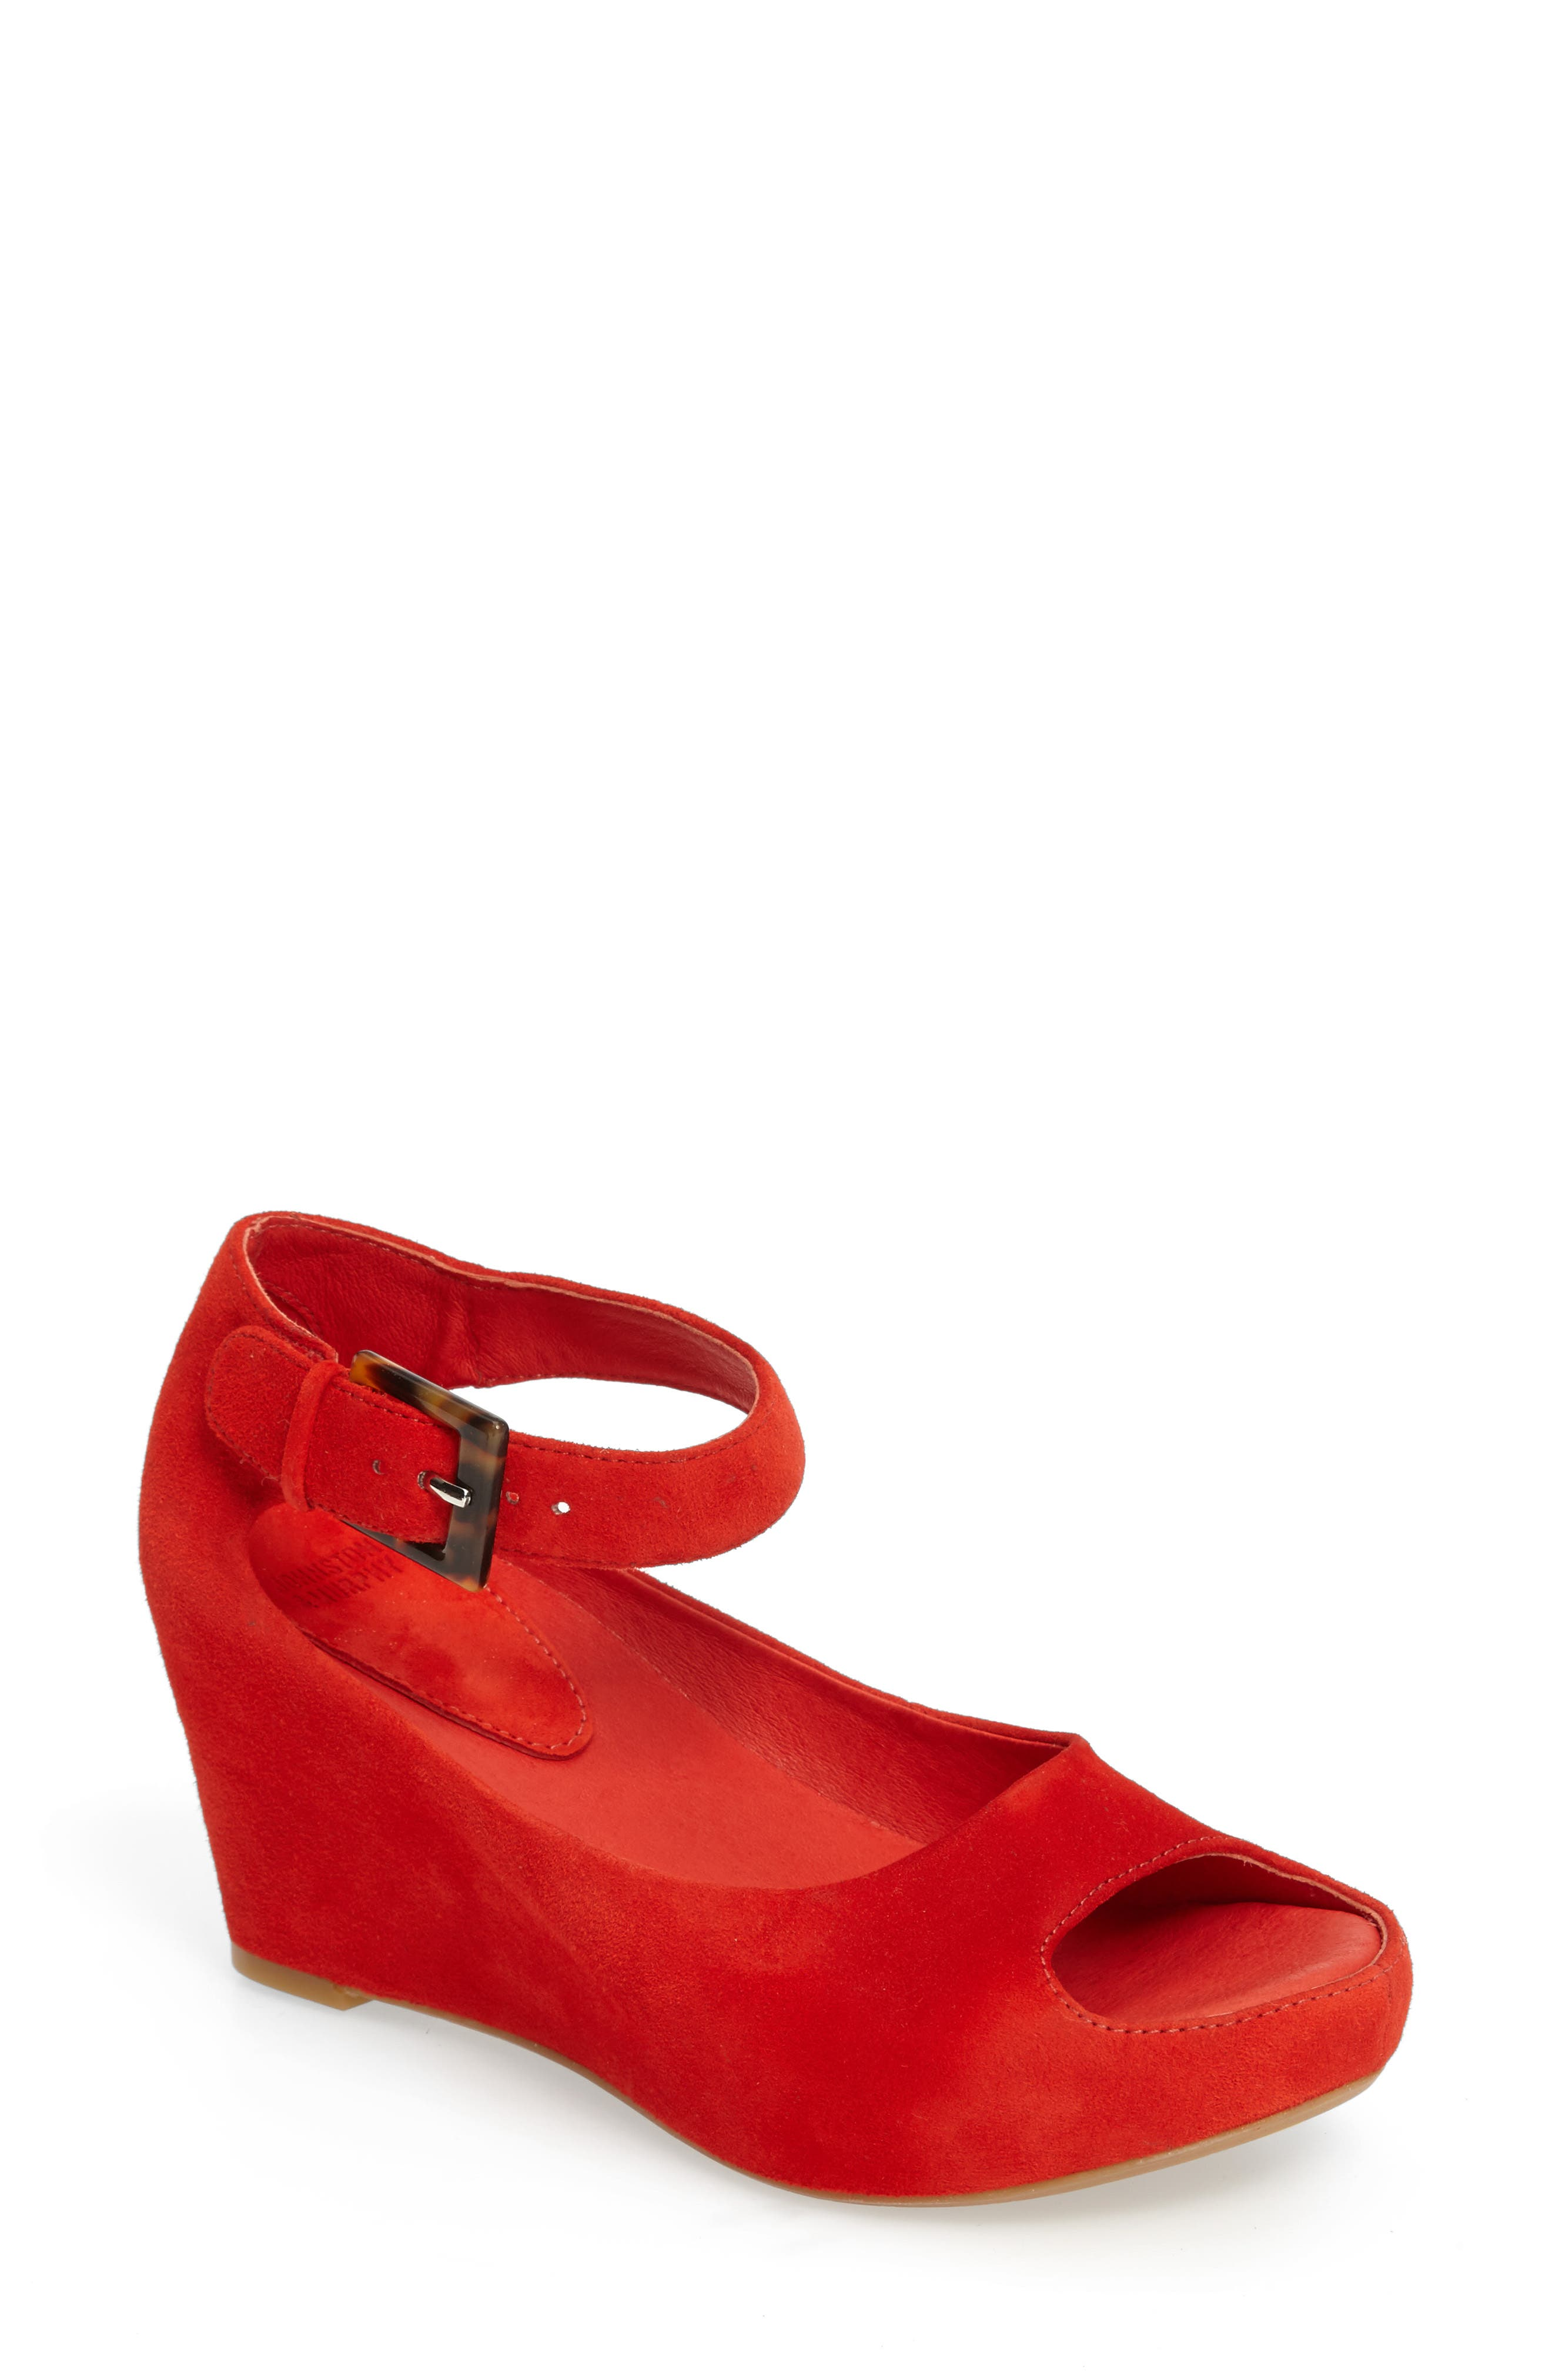 'Tricia' Ankle Strap Sandal,                             Main thumbnail 1, color,                             FLAMINGO RED SUEDE